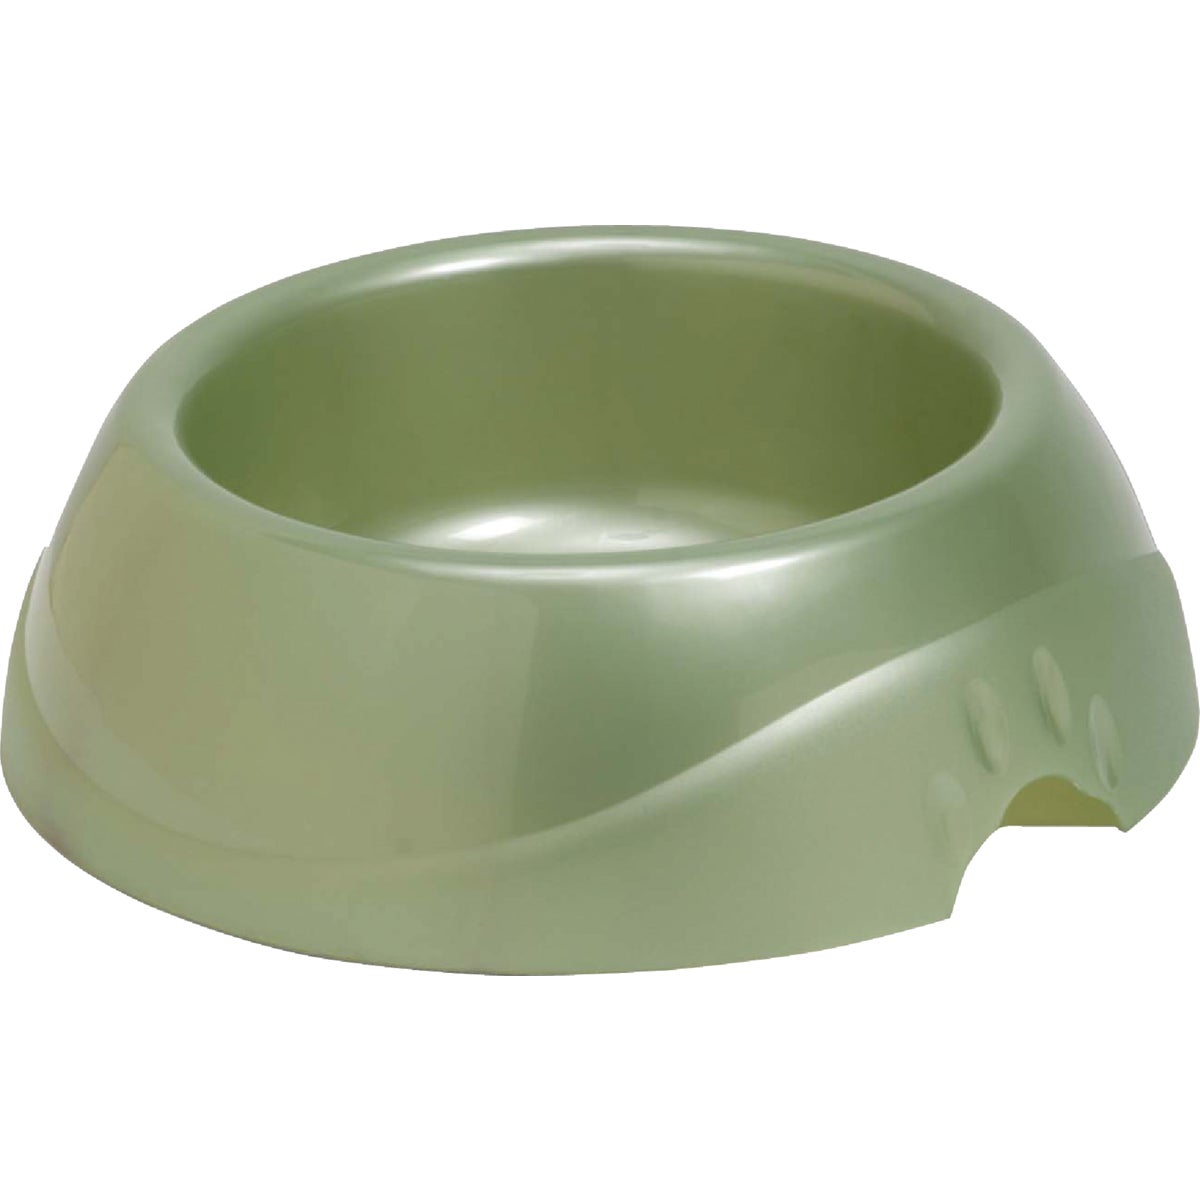 LARGE DESIGNER PET DISH - 23079 by Petmate Doskocil